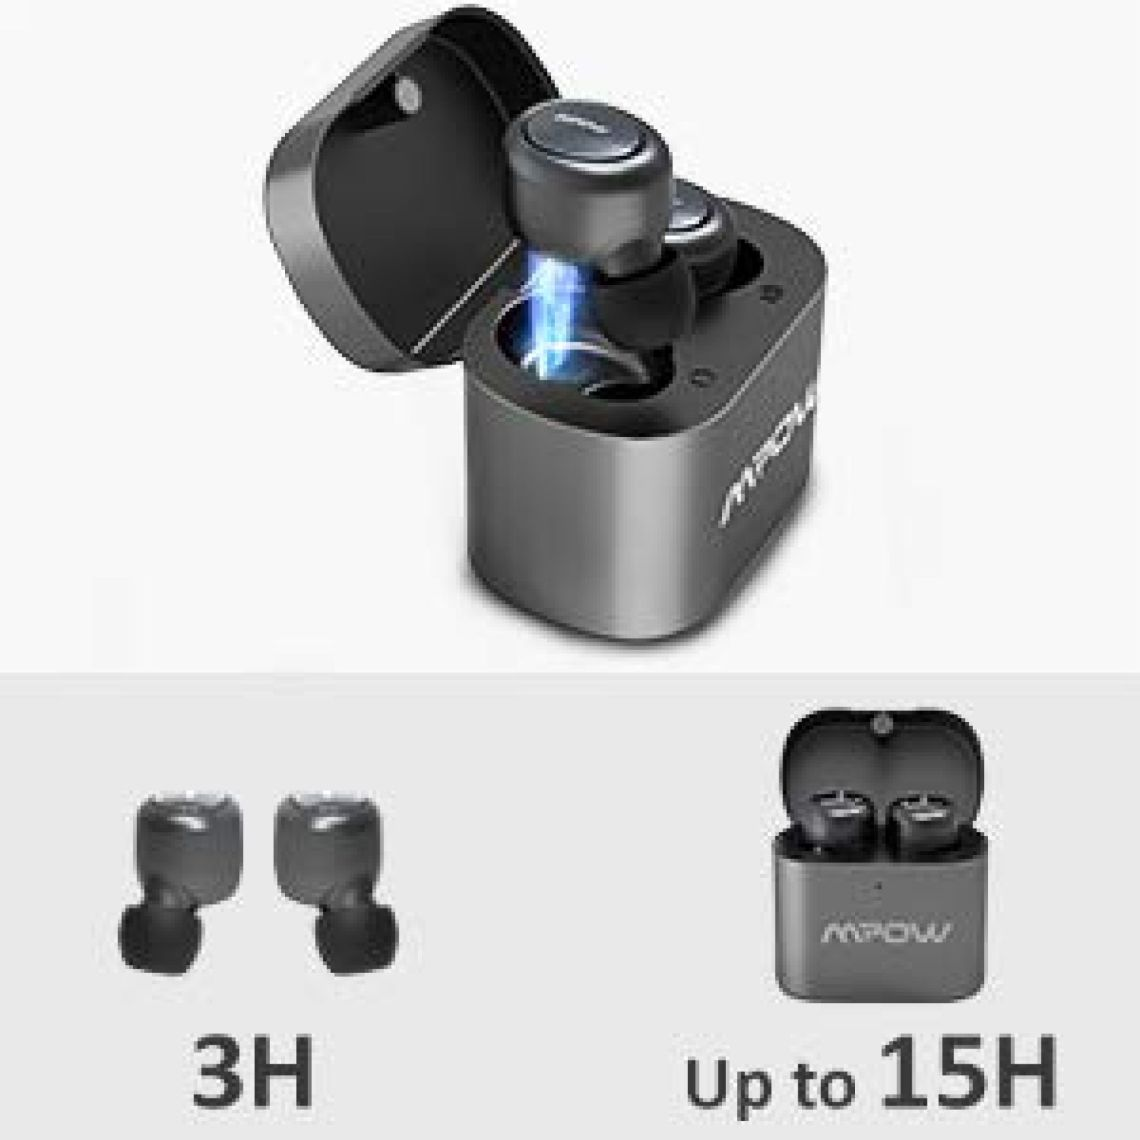 Amazon.com: Mpow Wireless Earbuds, TWS Bluetooth Headphone, True Wireless Earbuds, Bluetooth 5.0 Headset, Mini Smart Earbuds - Build-in Mic - HD Stereo Sound - 15Hrs Playtime -Compatible with Cell Phone: Cell Phones & Accessories